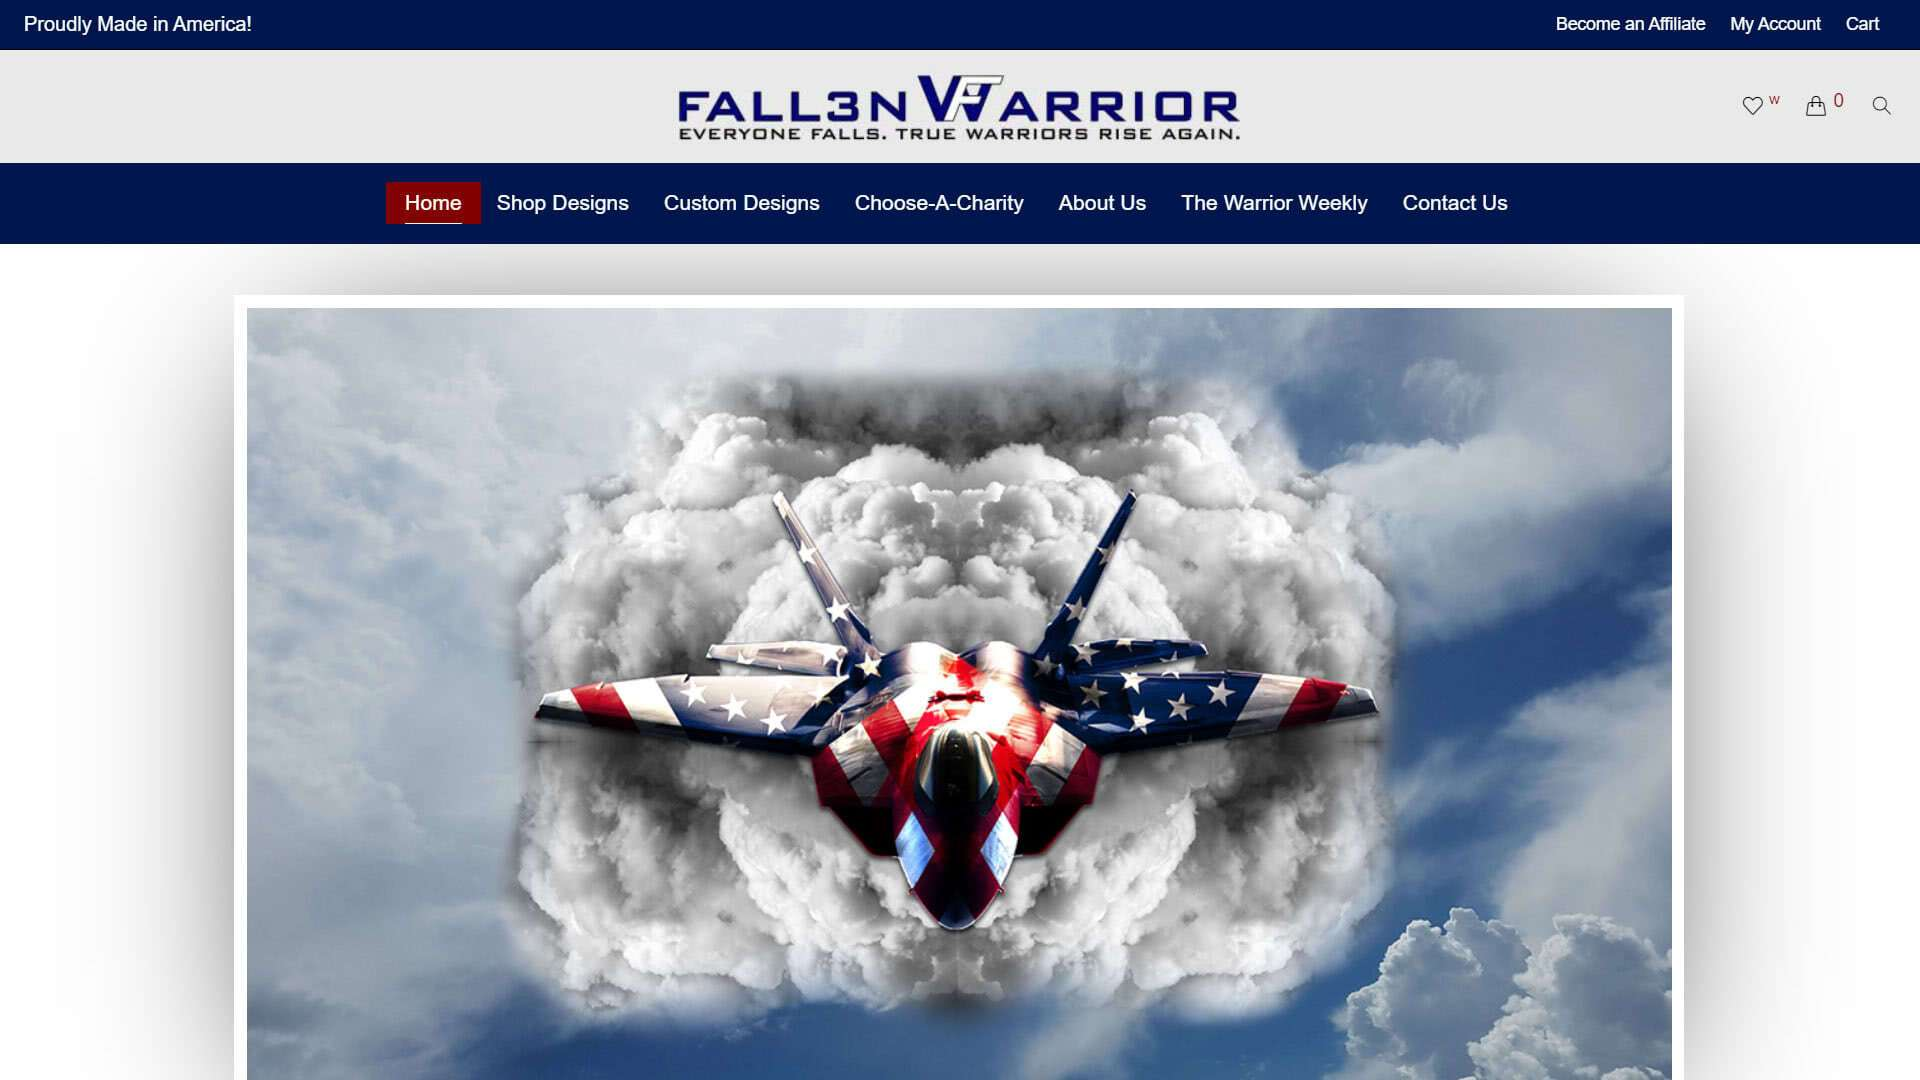 fall3nwarrior-home-page